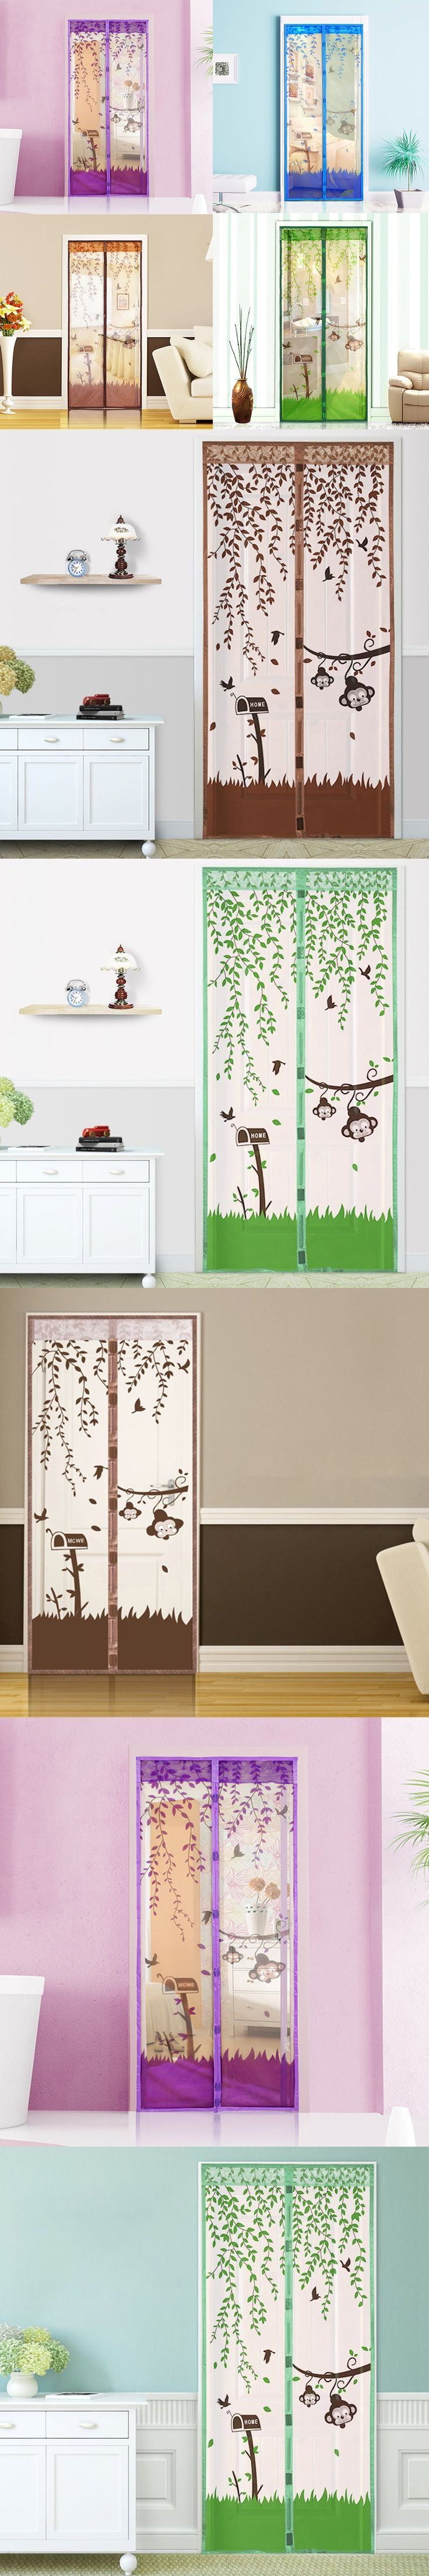 1PC High Quality 90*210cm/100*210cm Magnetic Mesh Screen Door Fly Bug Insect Mosquito Net Curtain T0.1